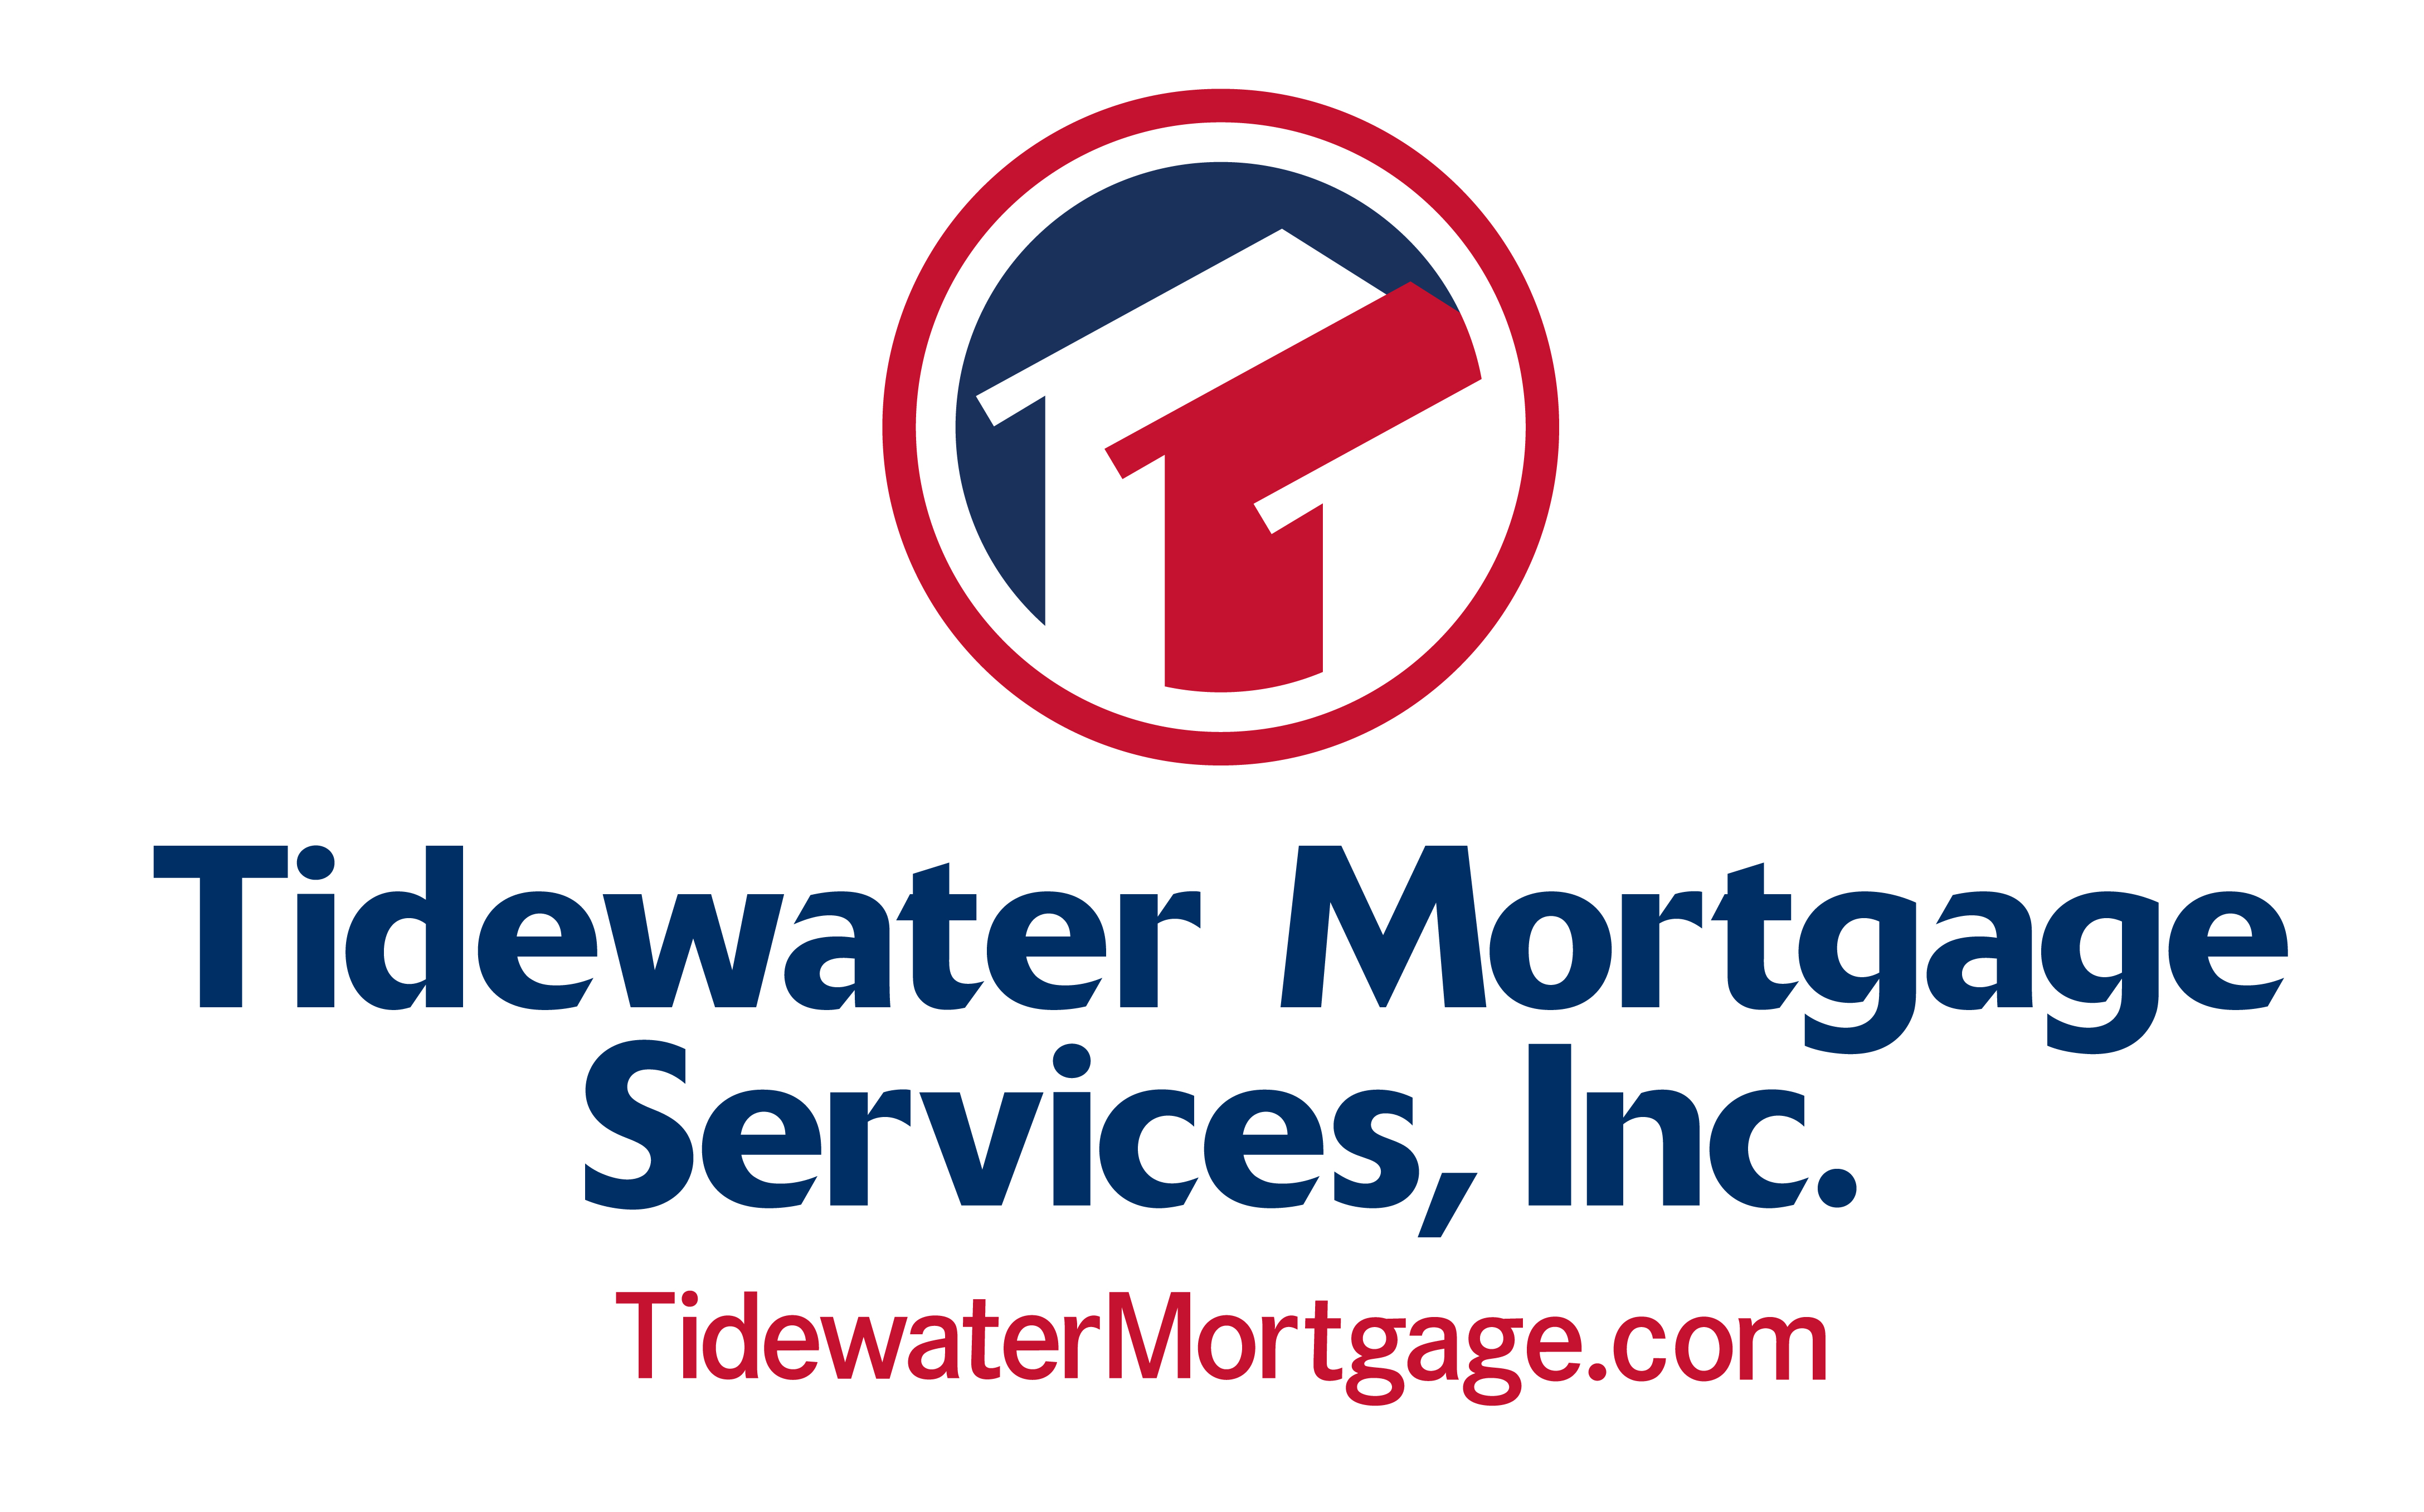 Tidewater Mortgage